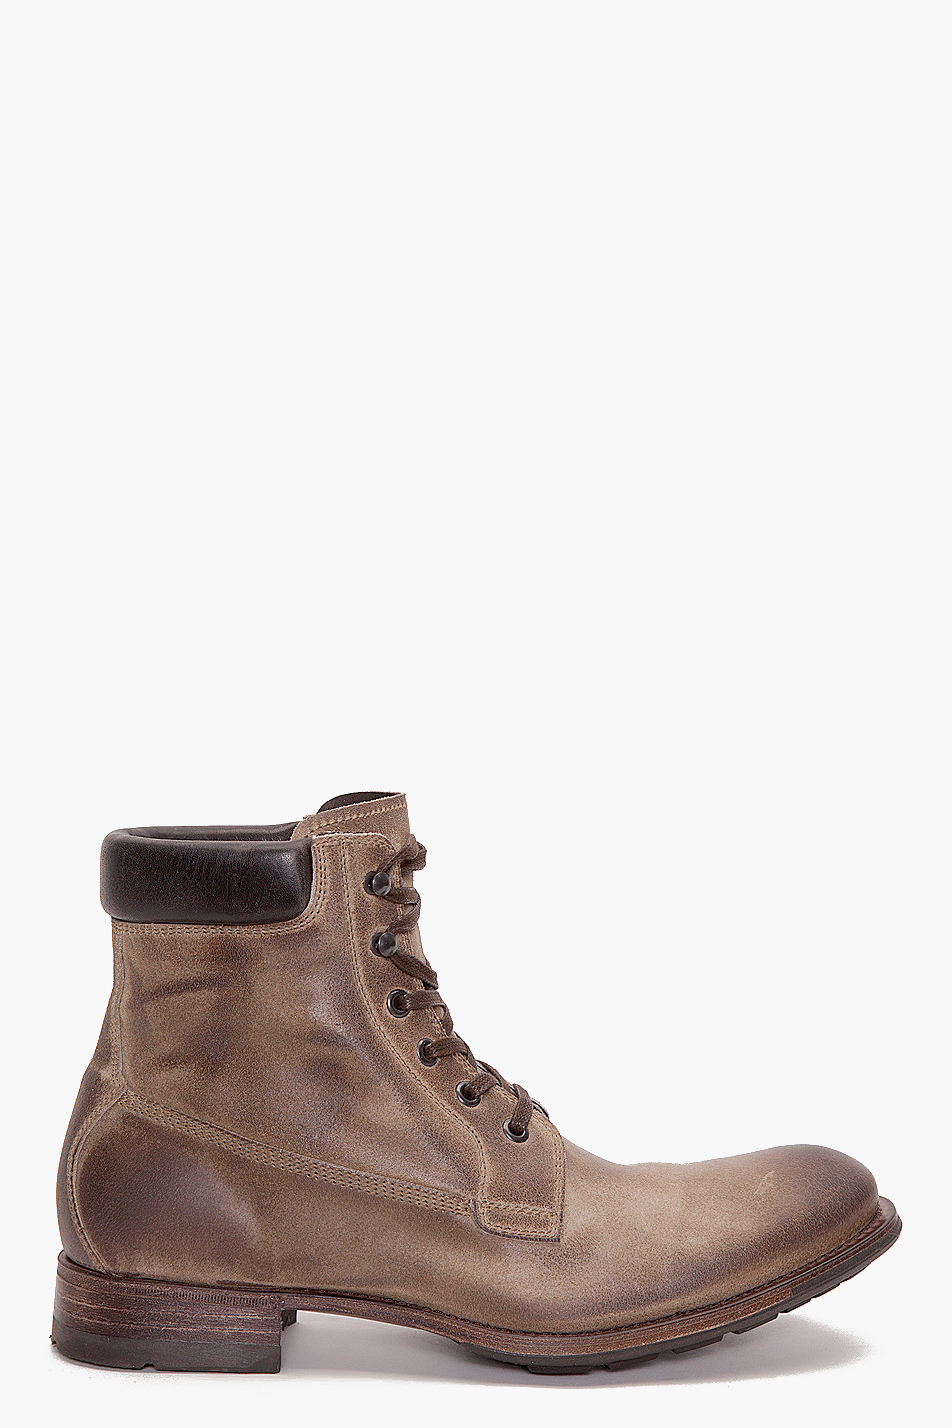 ndc forester r bronx boots in brown for lyst